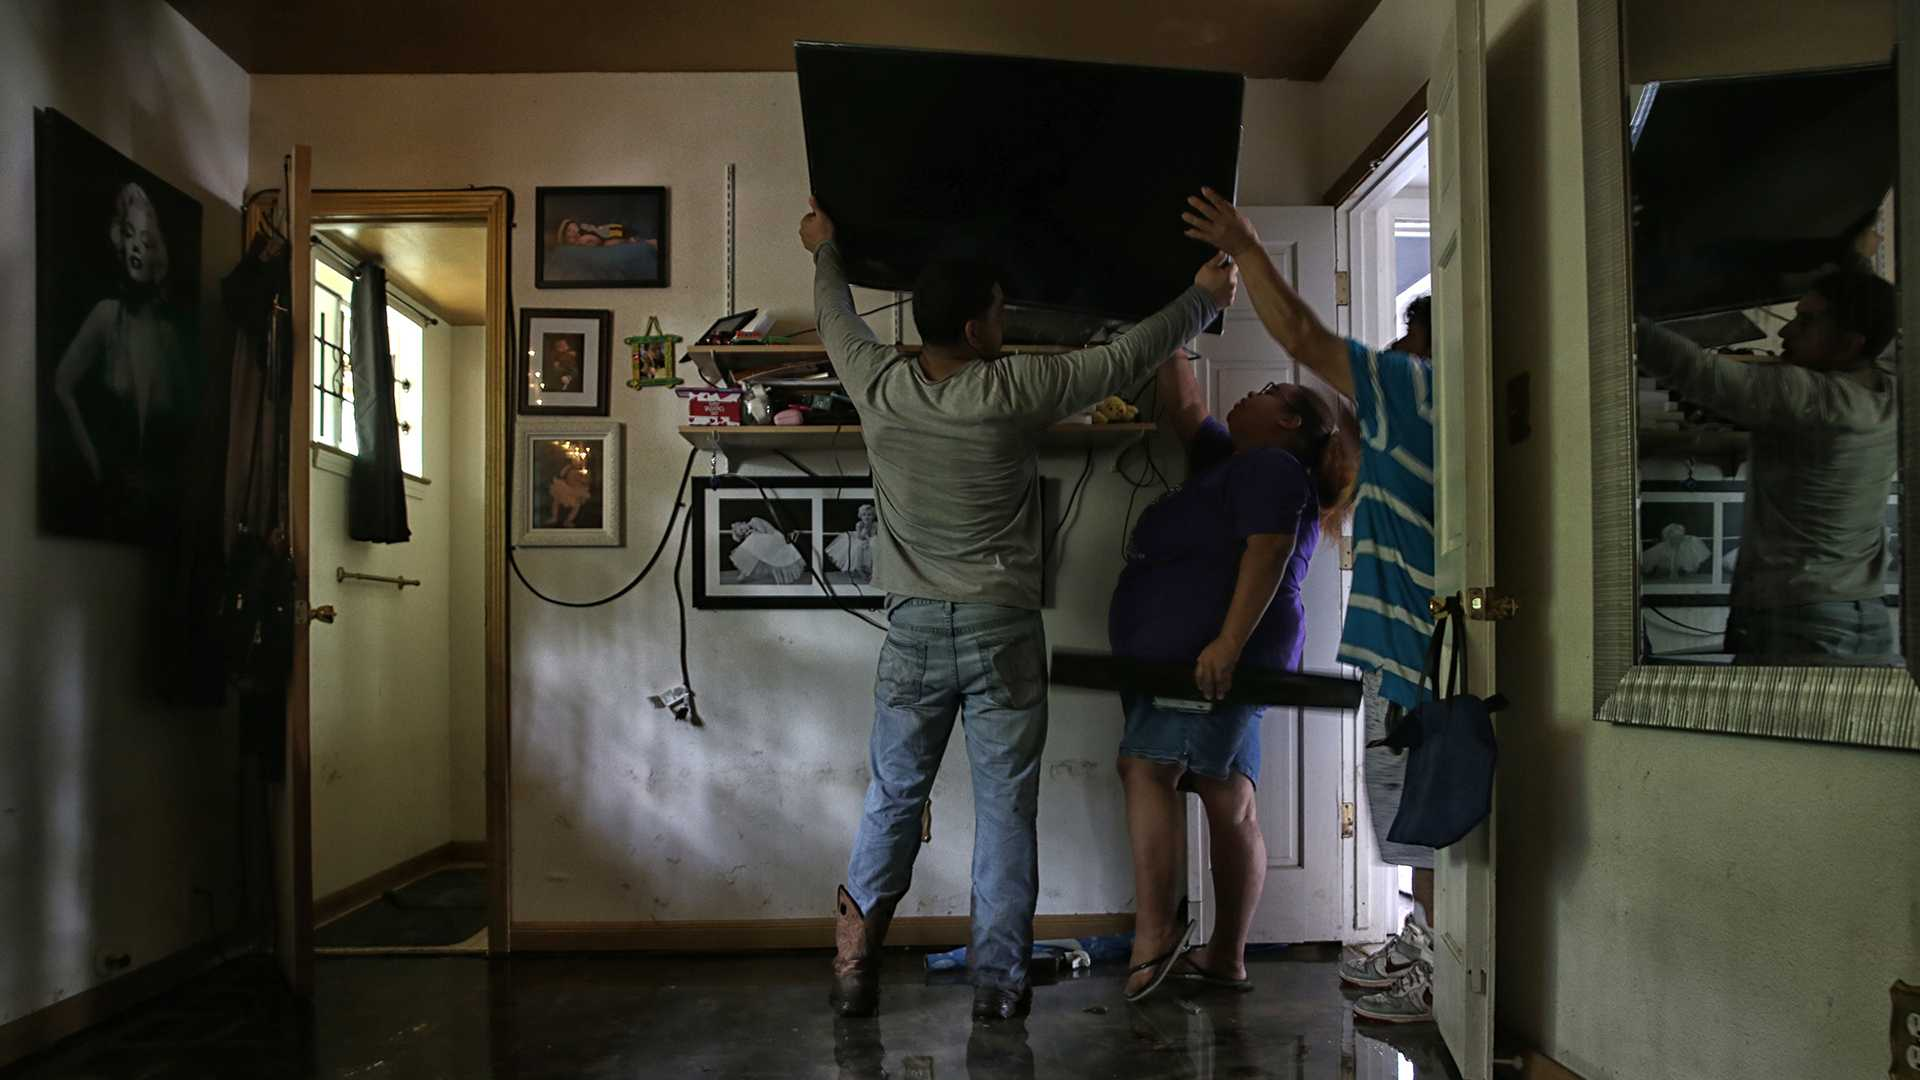 Houston residents in the Lakewood neighborhood return home to begin rebuilding from the devastating effects of Hurricane Harvey, on Thursday, Aug. 31, 2017. (Robert Gauthier/Los Angeles Times/TNS)